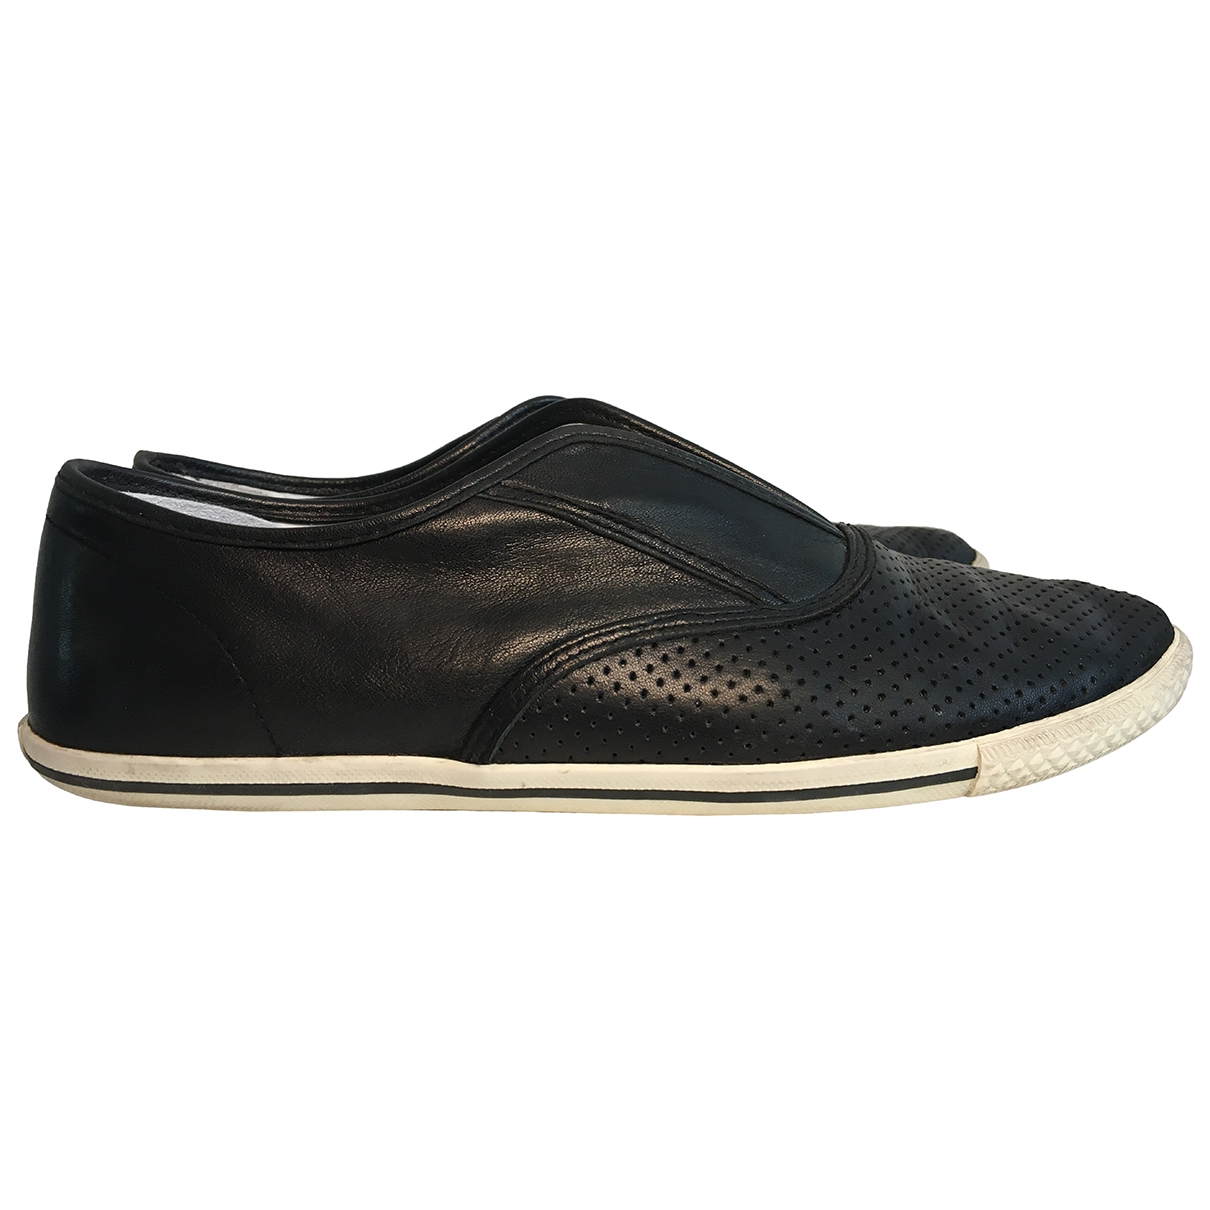 Marc By Marc Jacobs \N Black Leather Flats for Women 37 EU